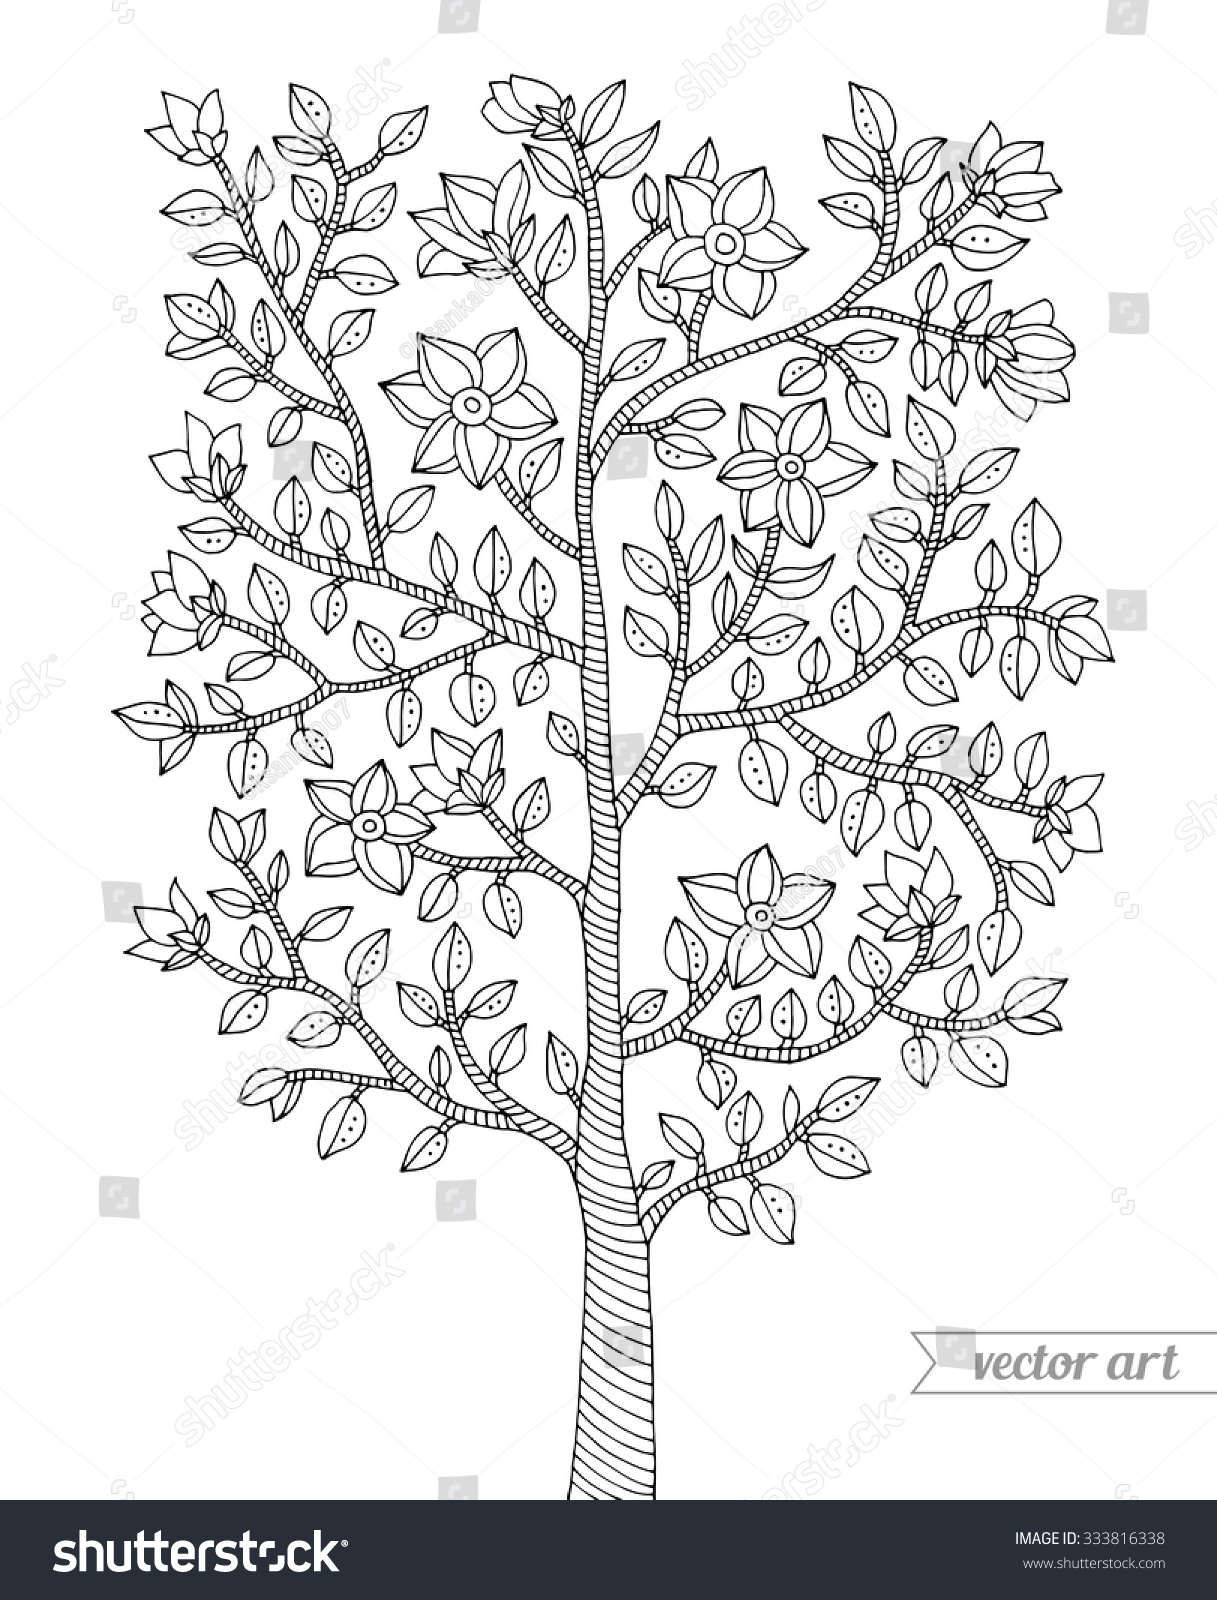 forest tree bush flowers blossom branch stock vector 333816338